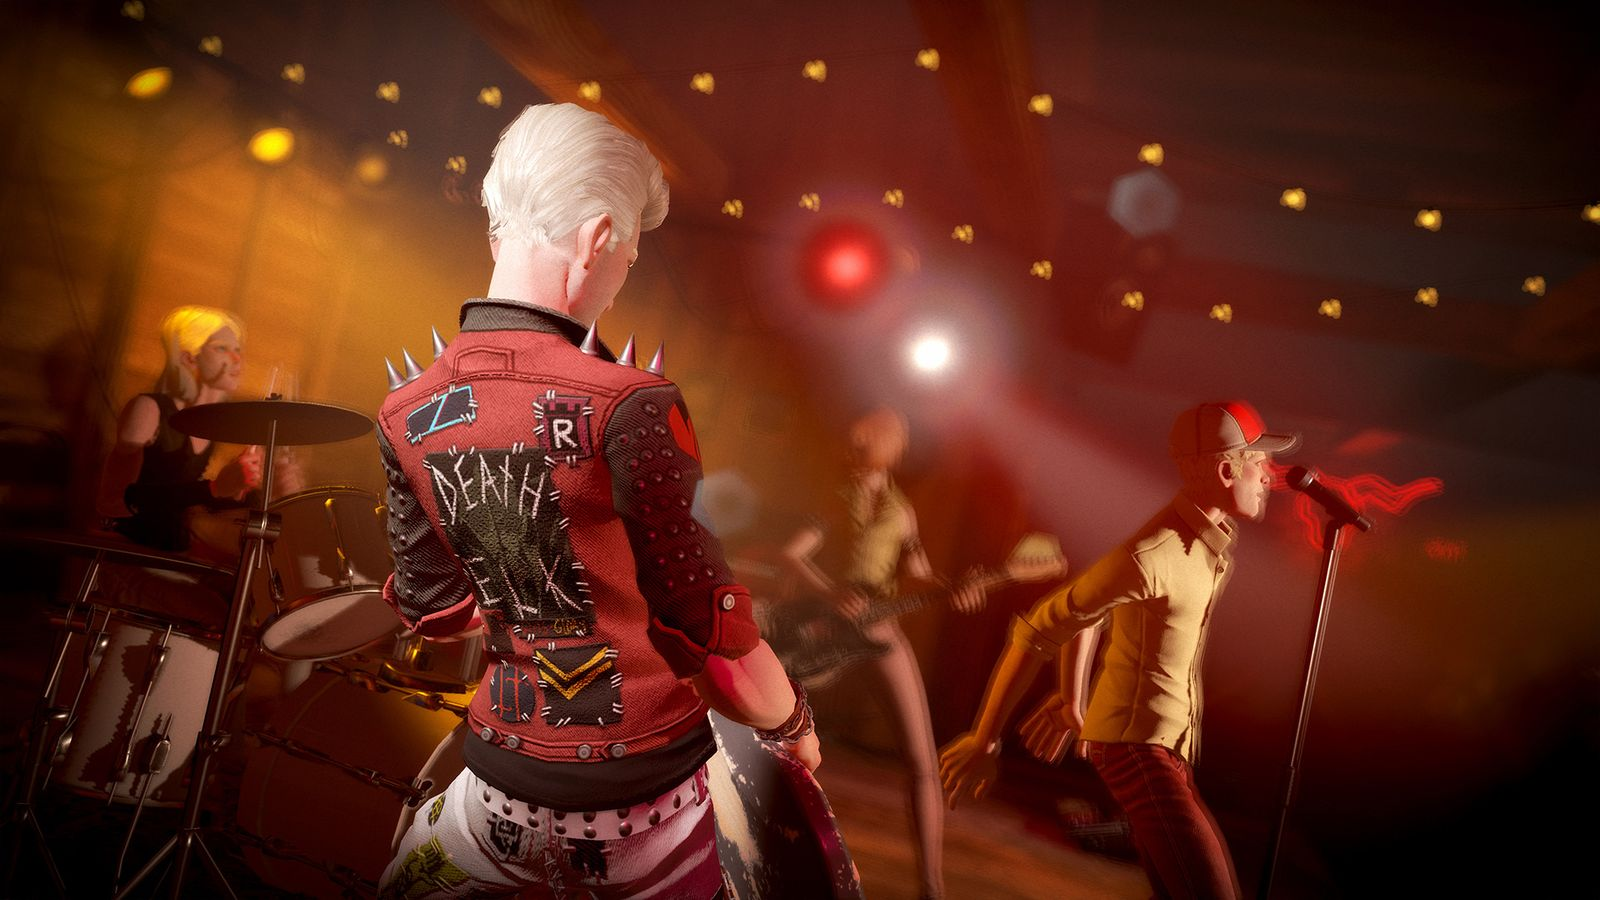 Rock Band 4 for PC will offer every DLC song ever for $2500